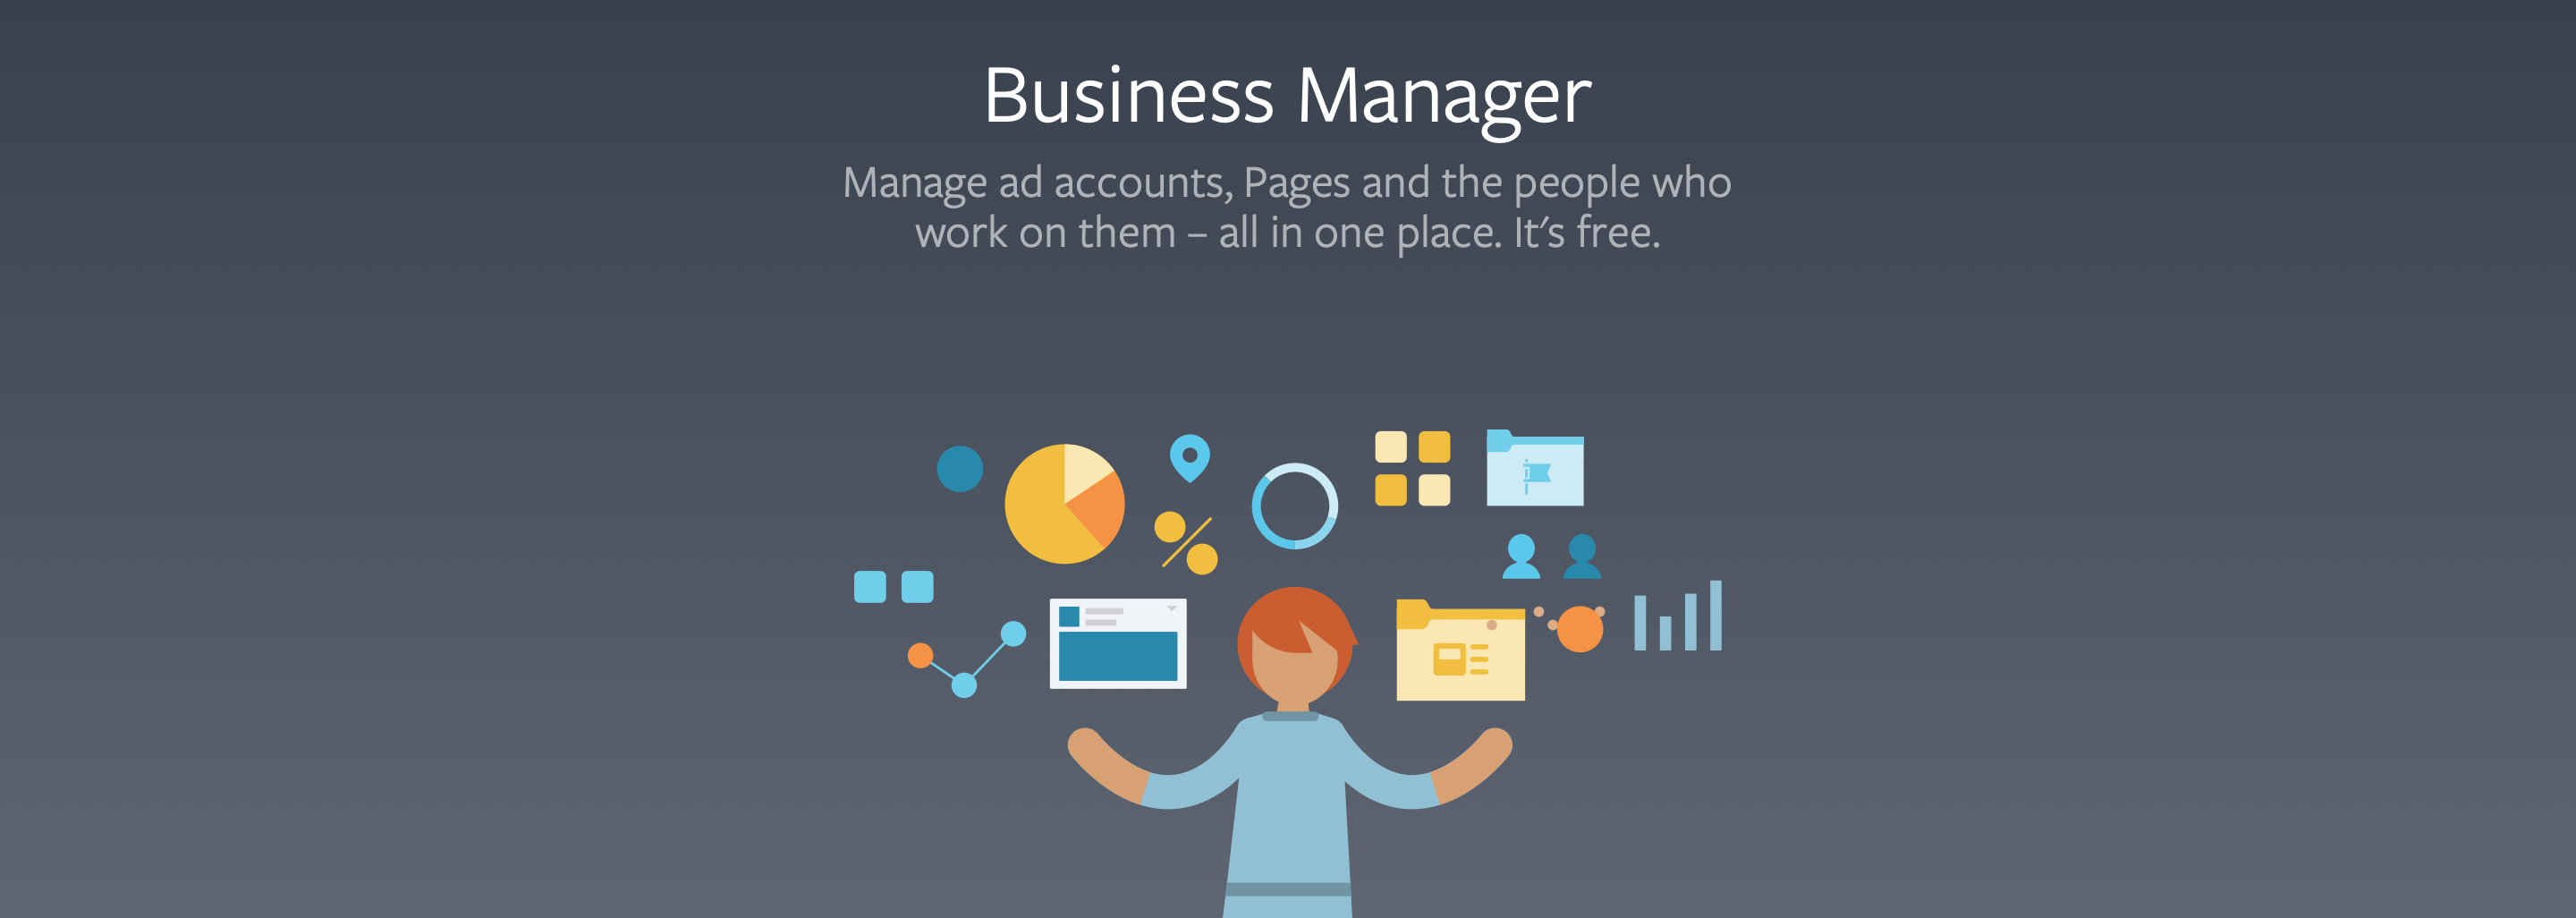 Business Manager na Facebooku